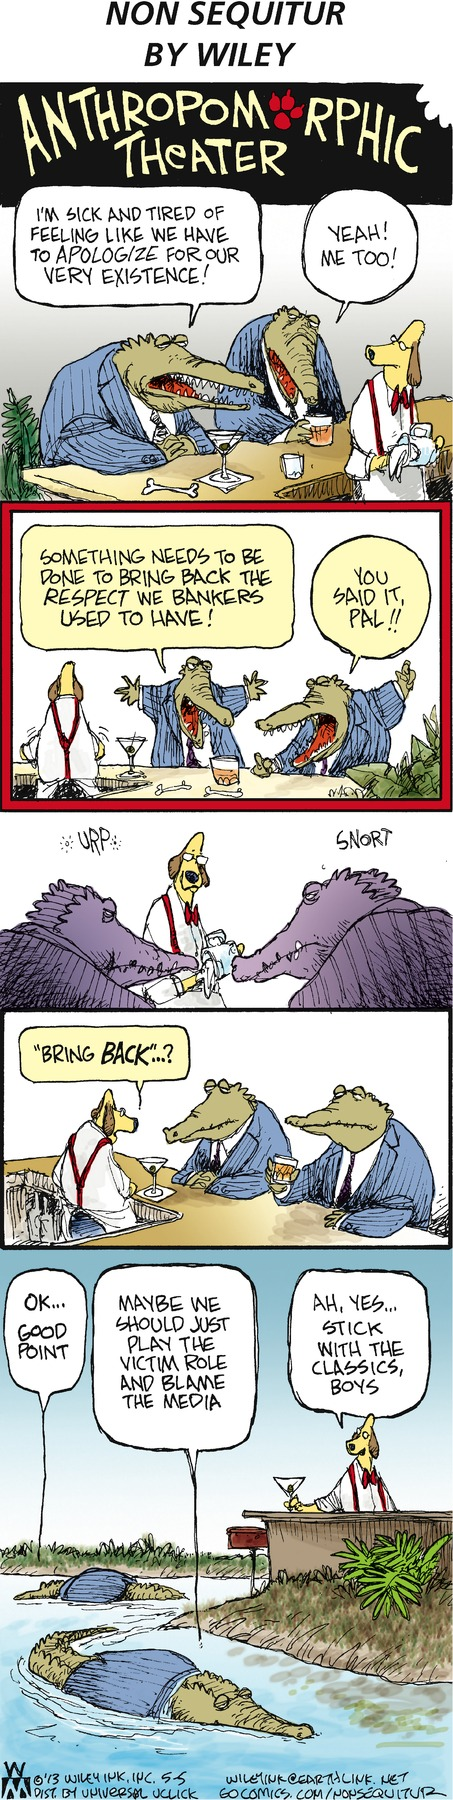 Non Sequitur for May 5, 2013 Comic Strip